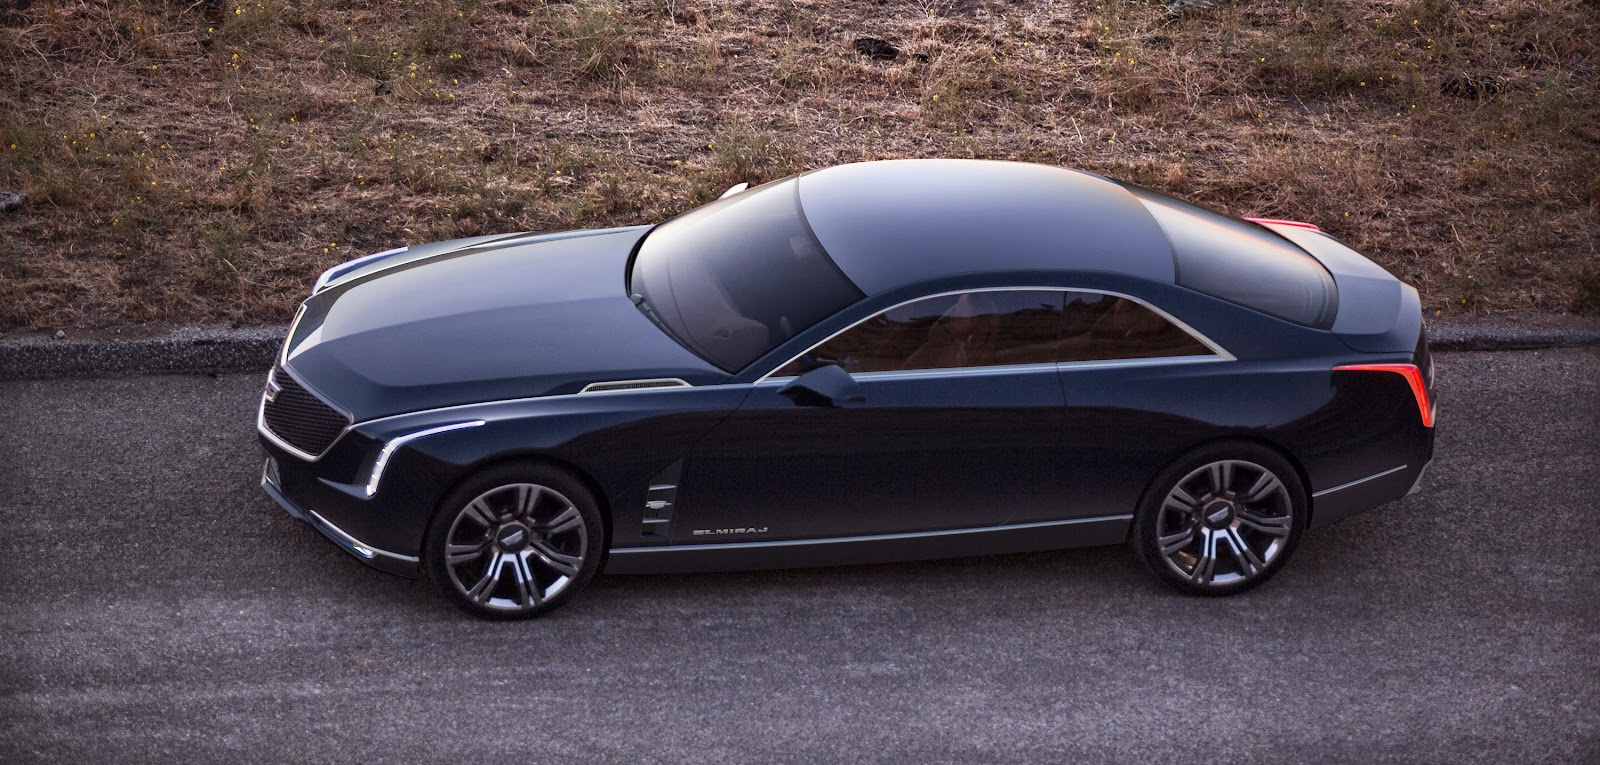 Video Cadillac Elmiraj Concept Could This Hint At Caddy S New Halo